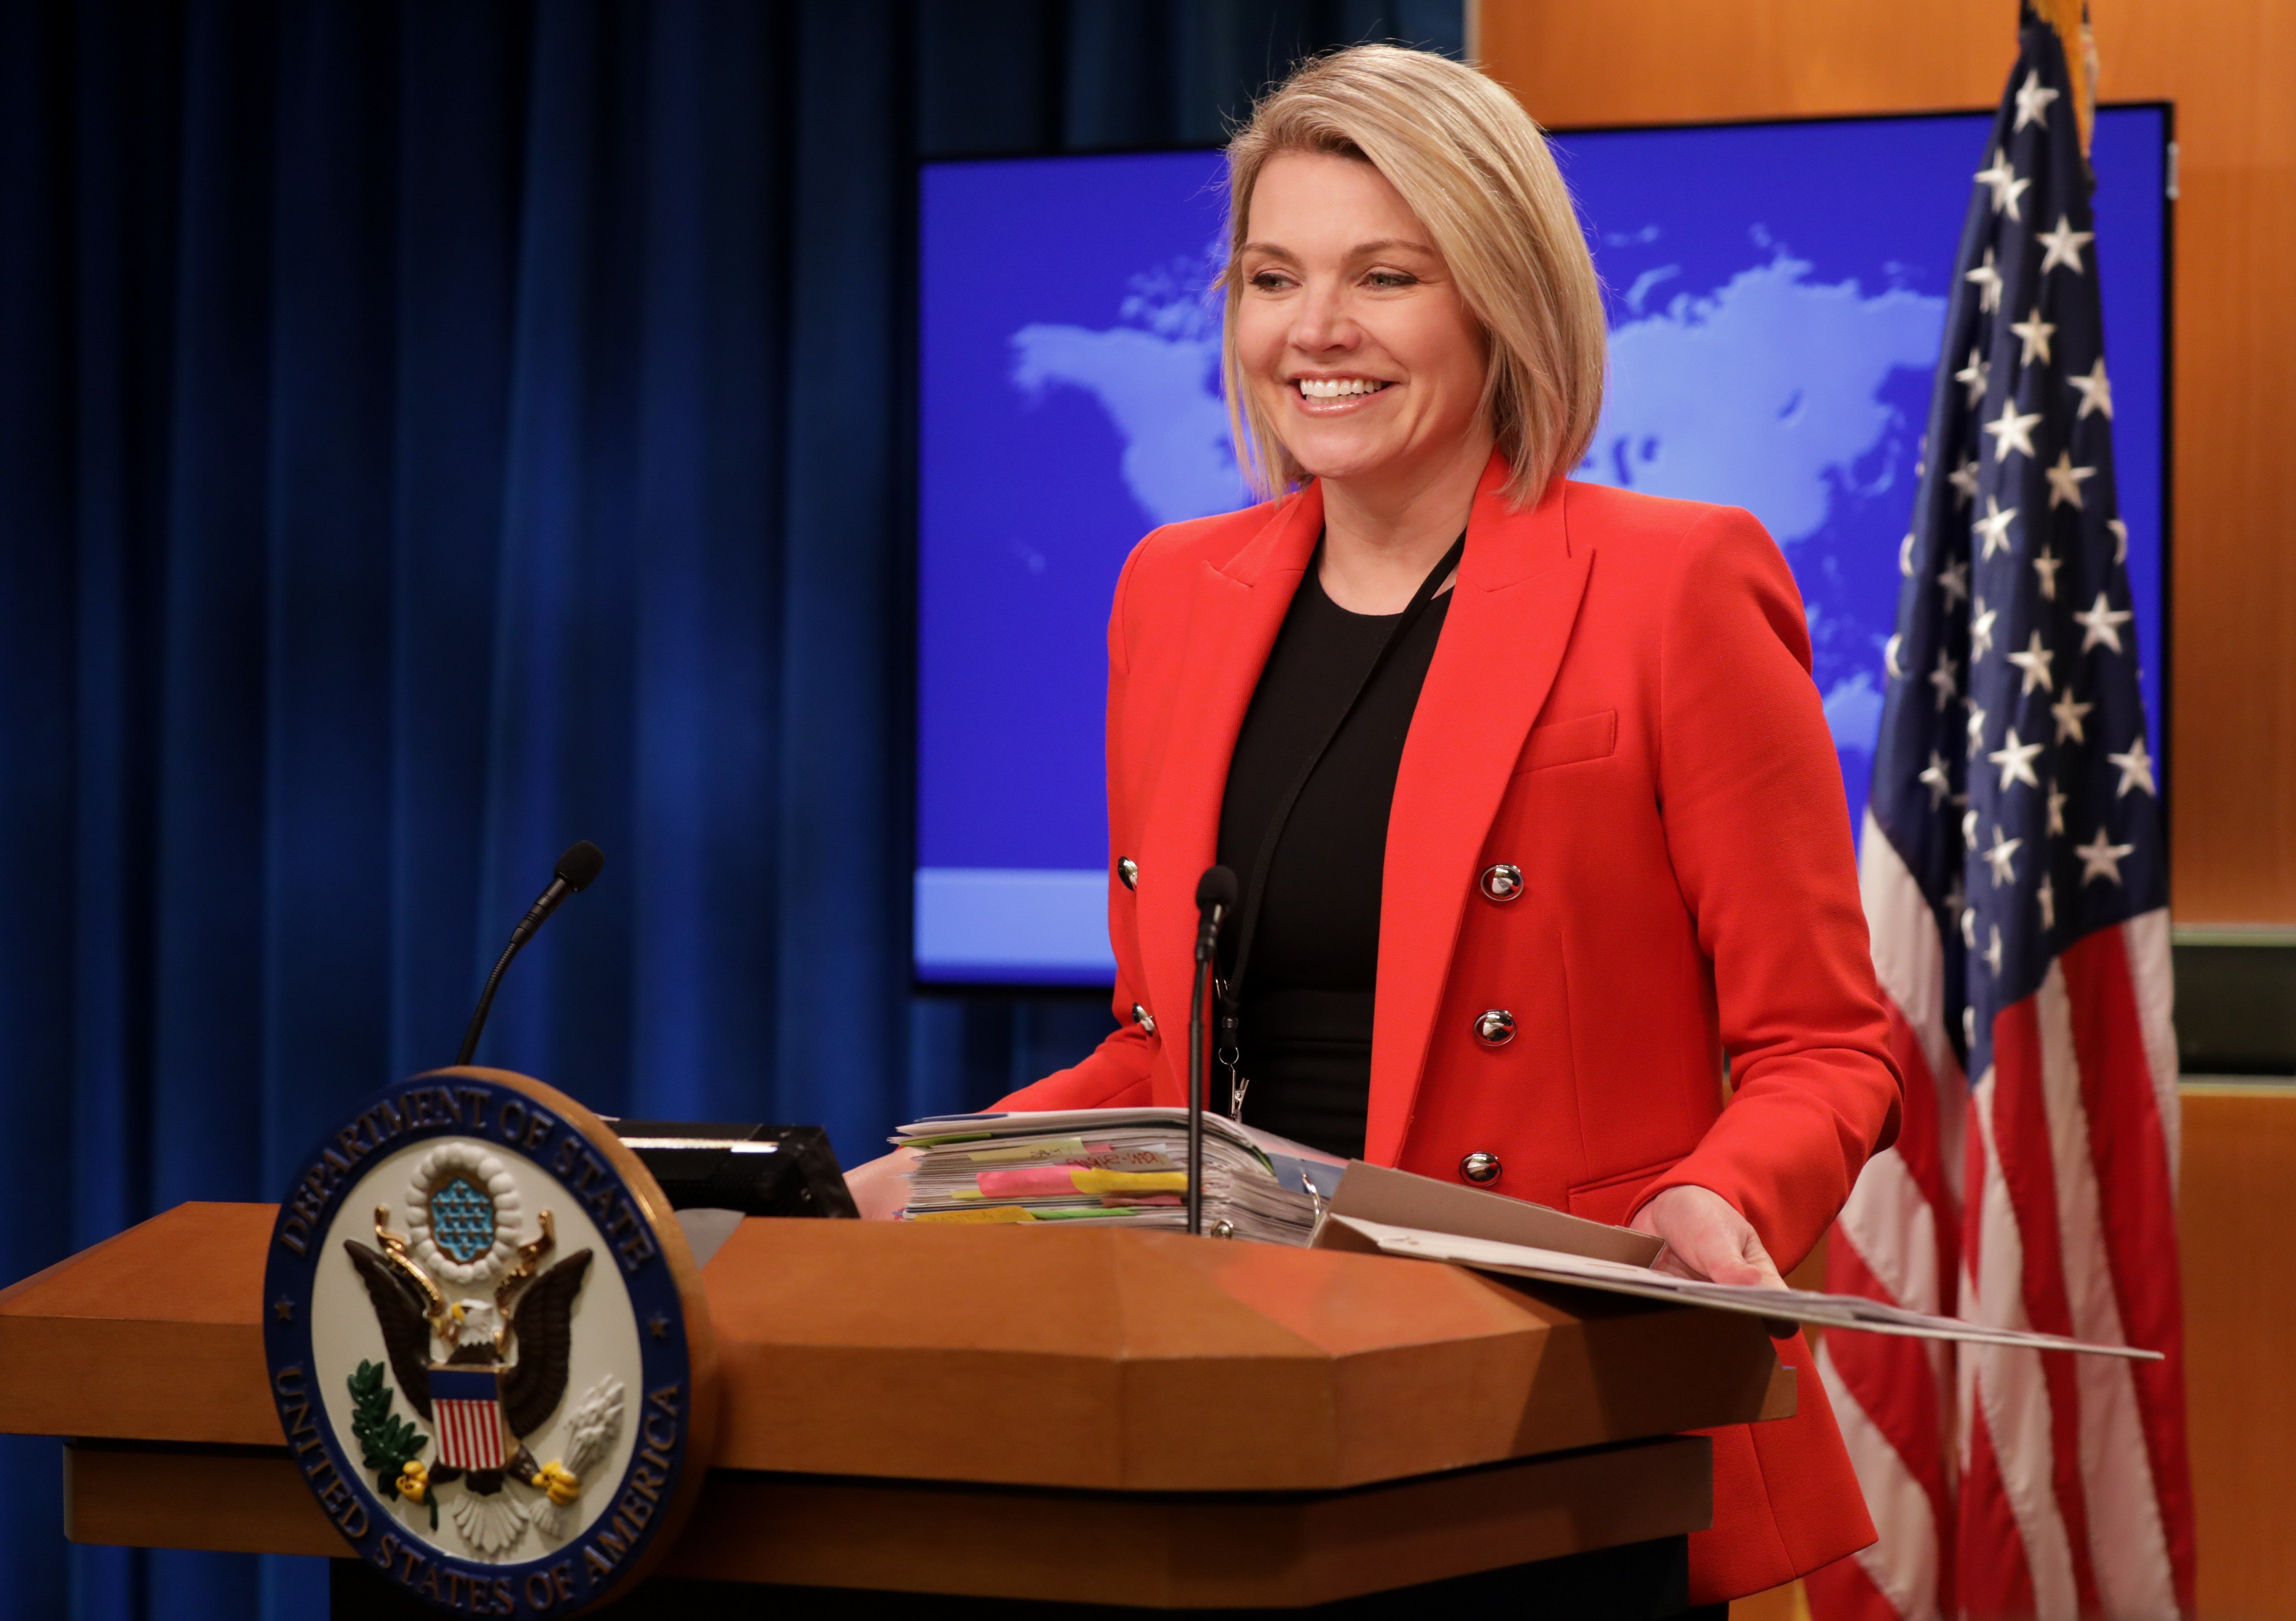 WASHINGTON, USA - NOVEMBER 15: U.S. Department of State Spokesperson Heather Nauert speaks during a press conference in Washington, United States on November 15, 2018. (Photo by Yasin Ozturk/Anadolu Agency/Getty Images)